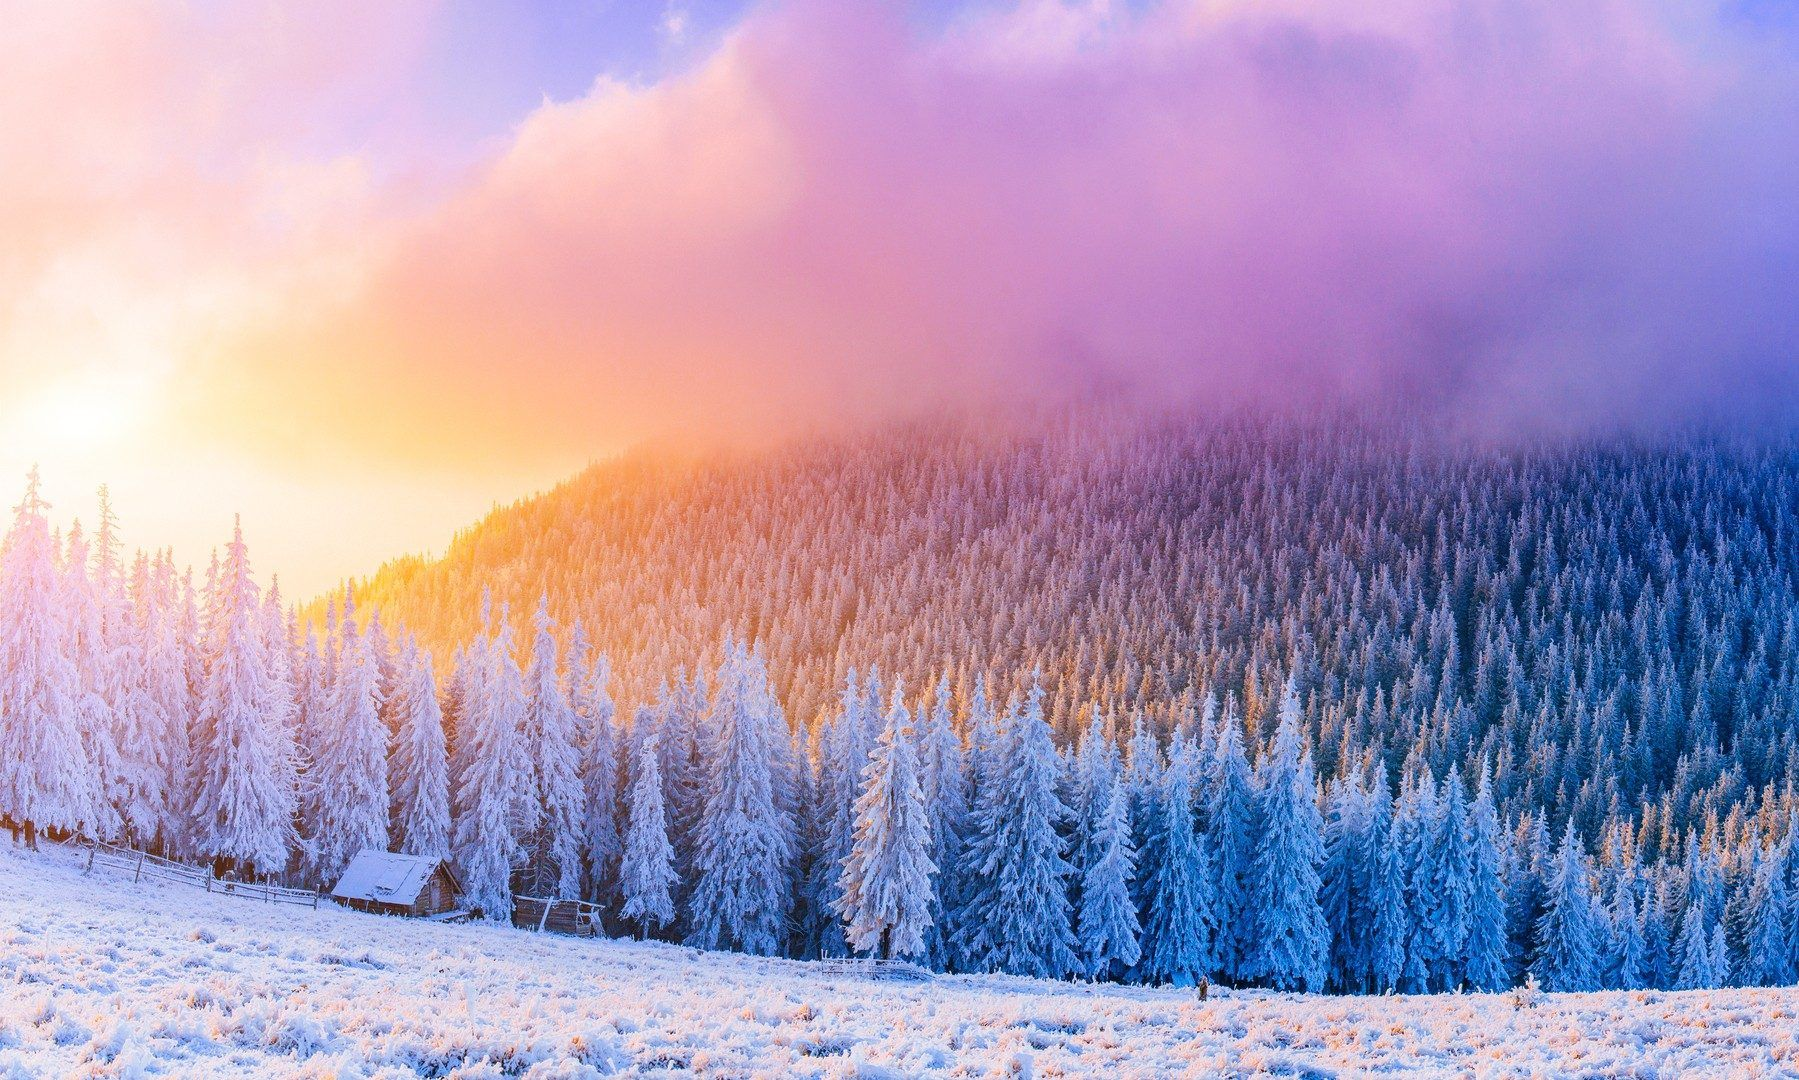 Winter Frost Windy Snow Trees Sunrice Clouds Pine Forest